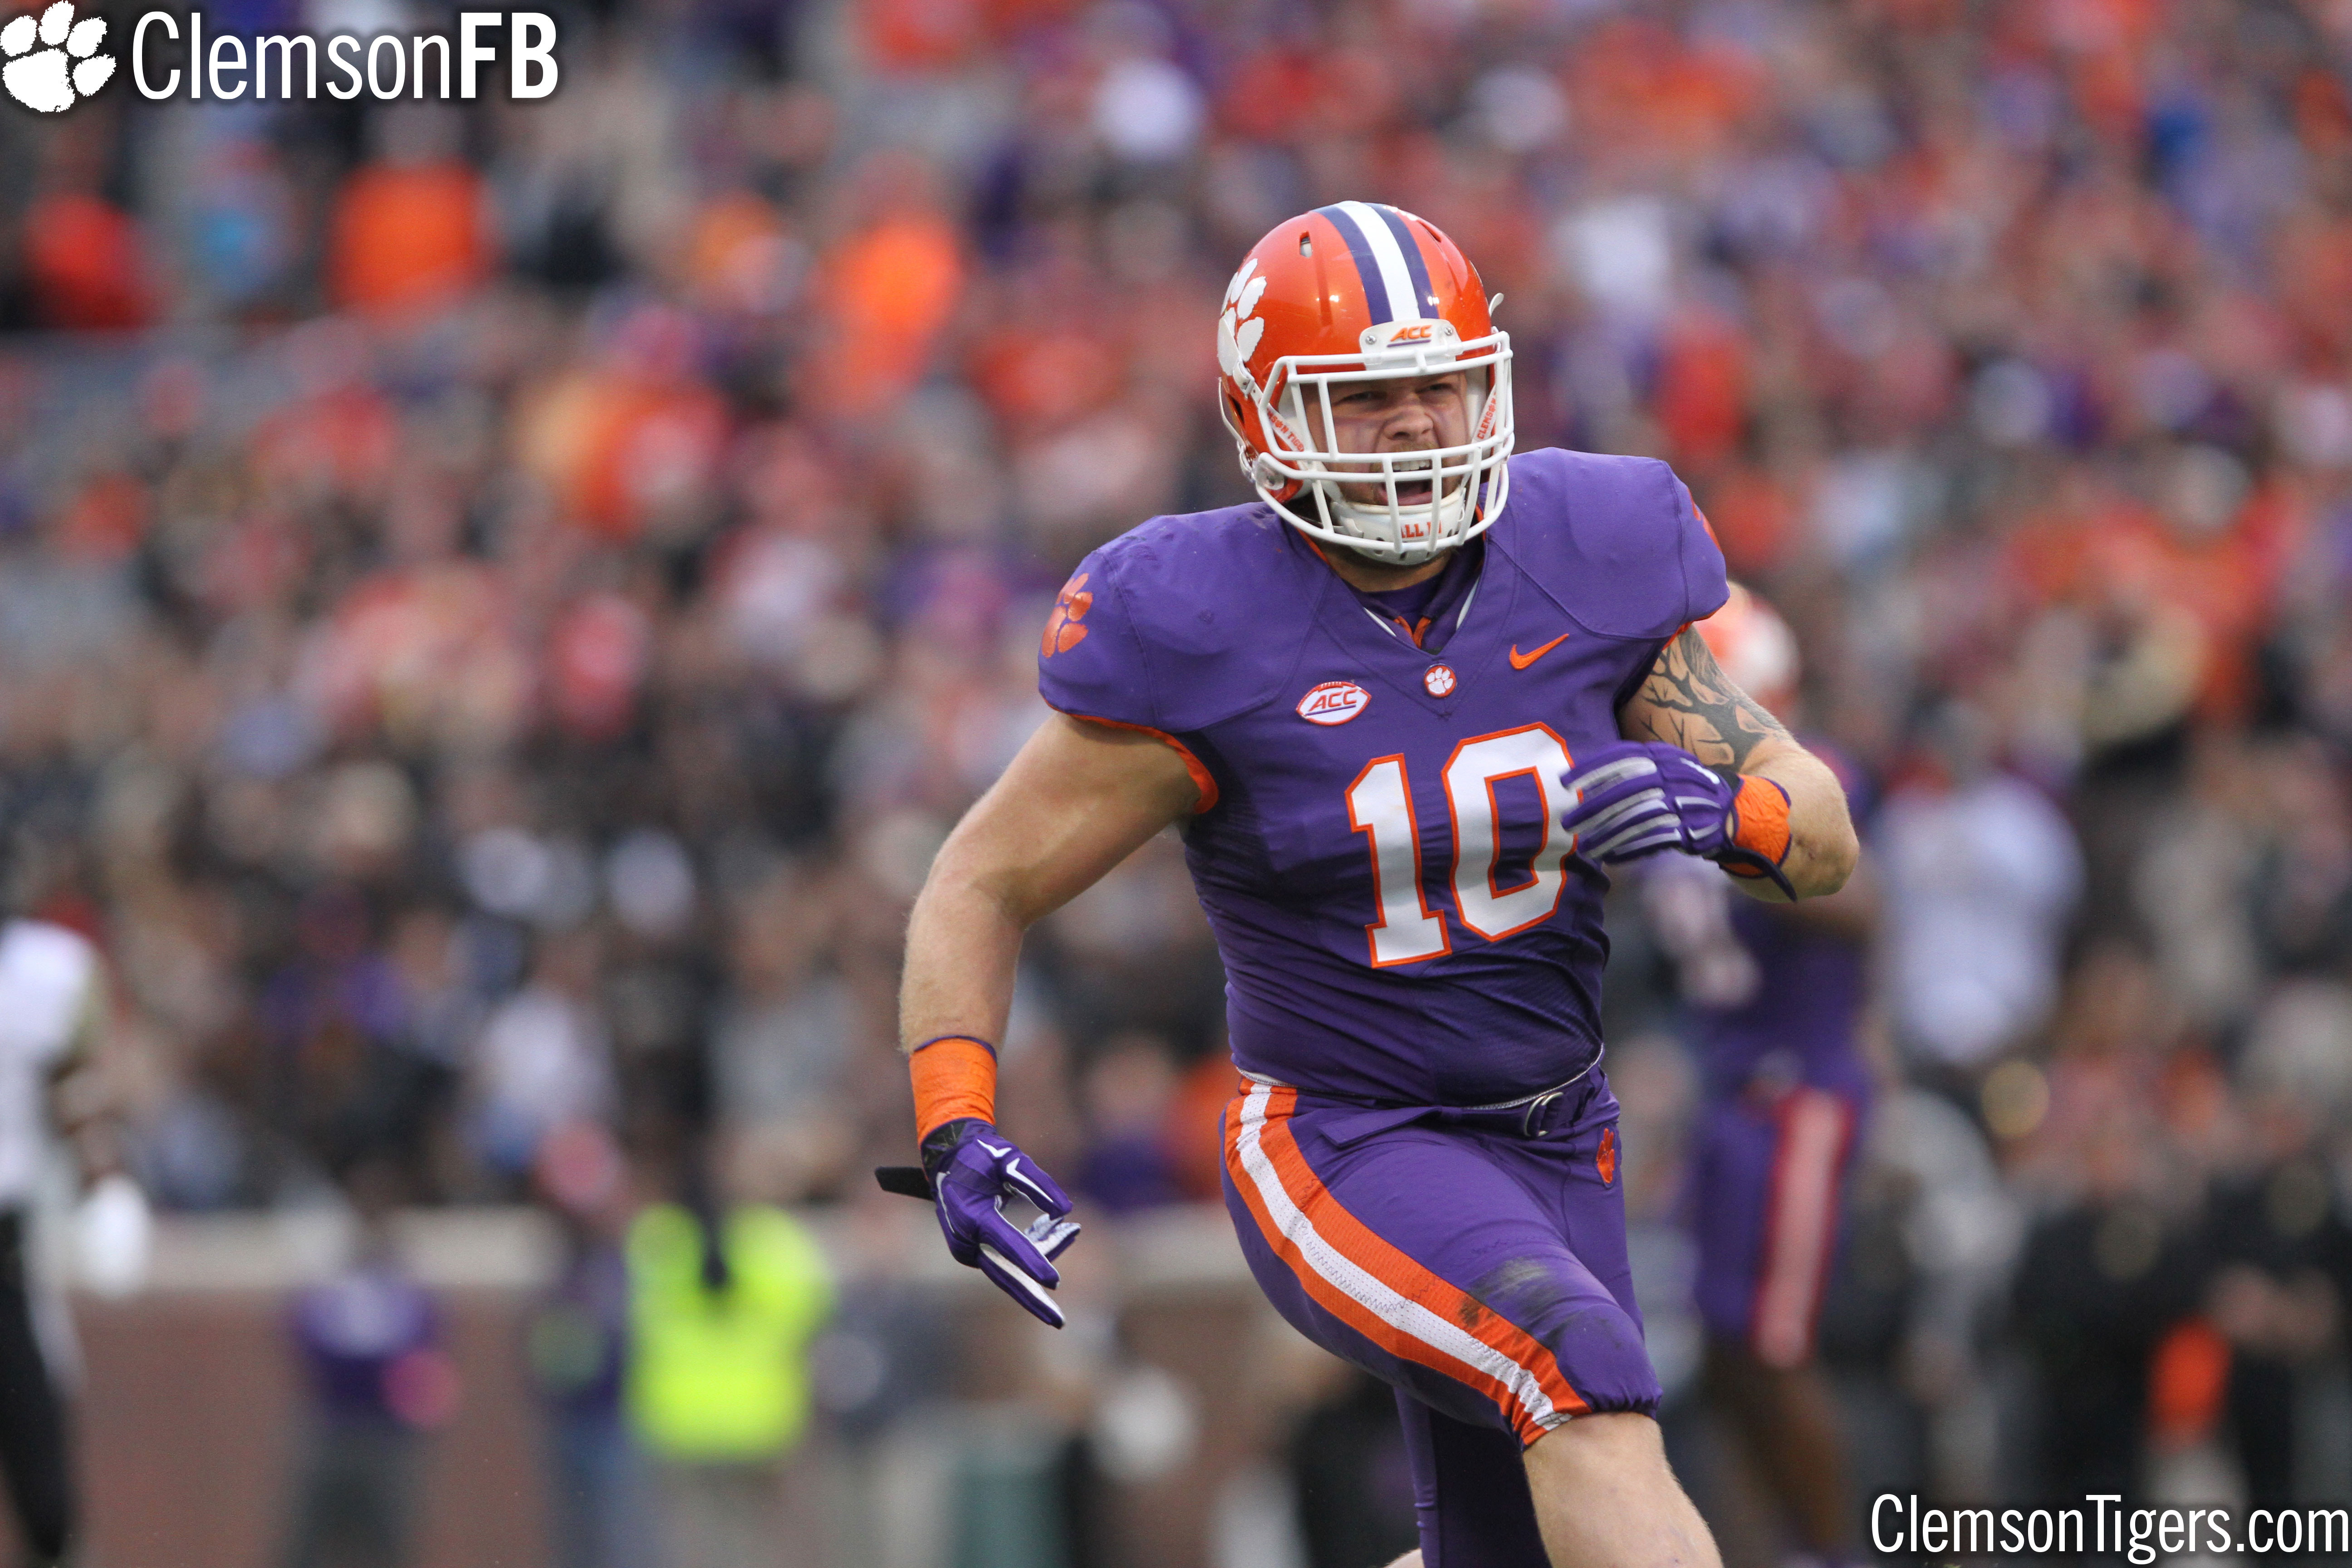 Bowlware Named to Butkus Watch List